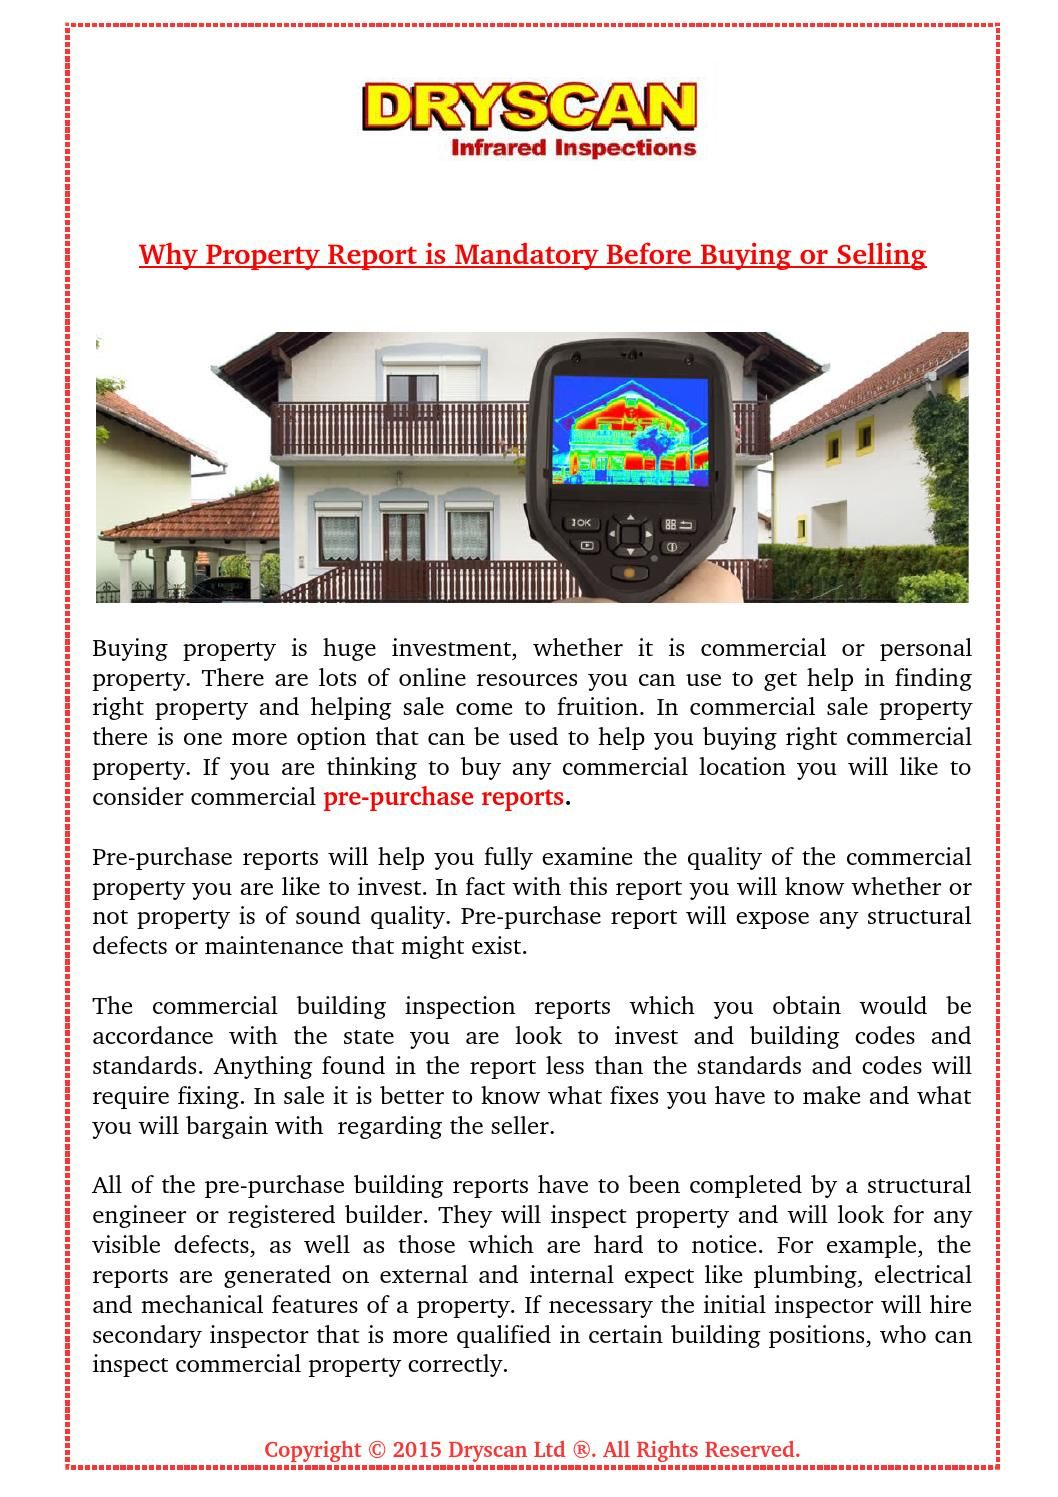 Why Property Infrared Inspection Report Is Mandatory